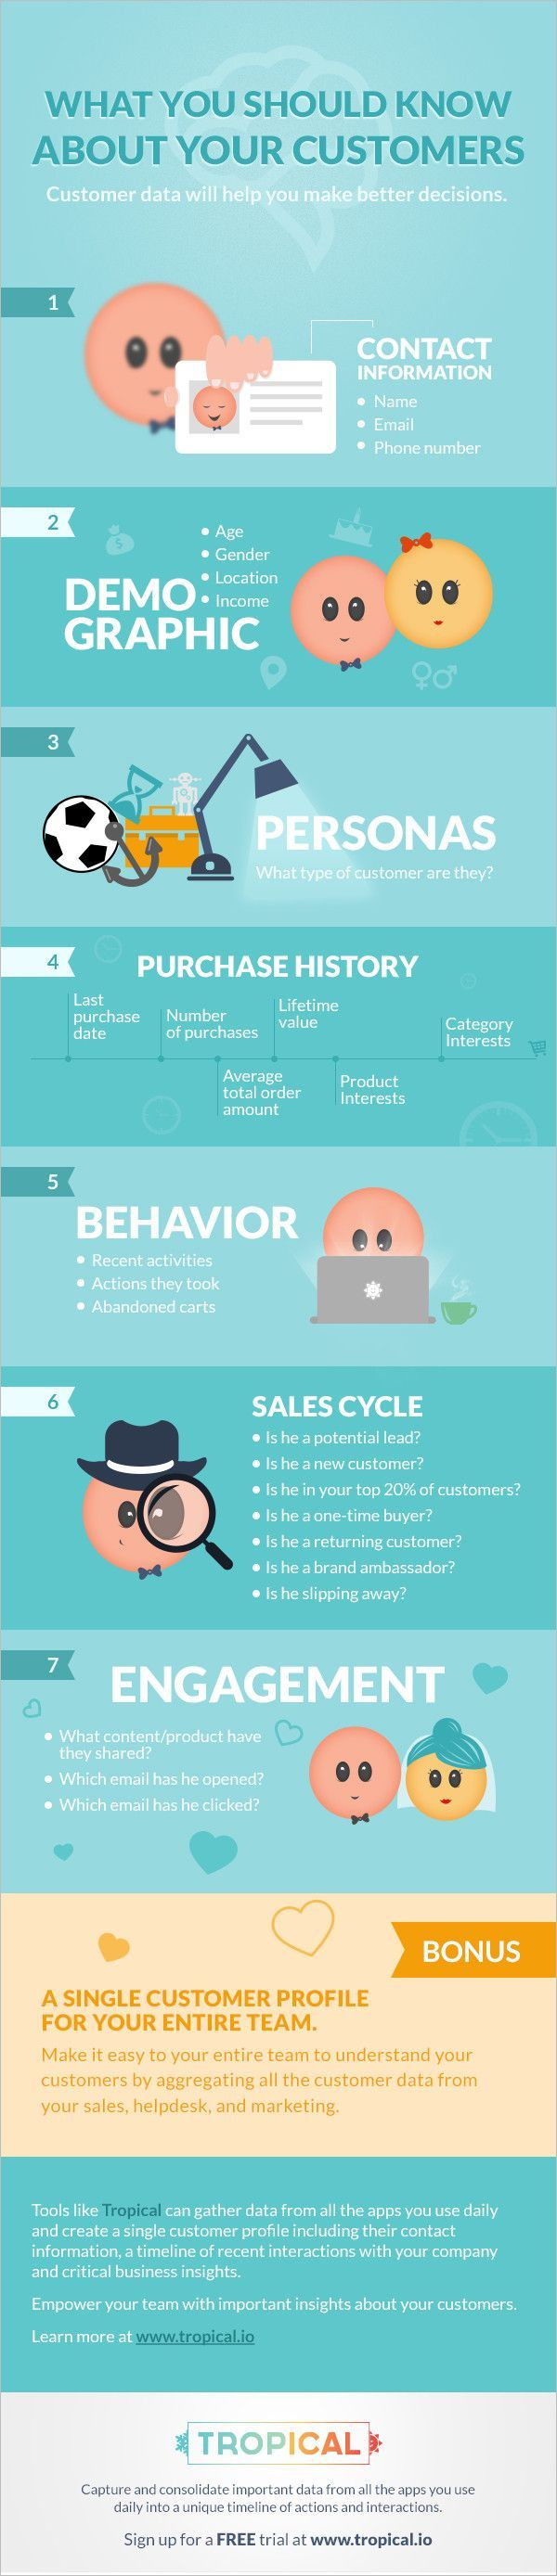 What You Should Know About Your Customers - Customer Data Will Help You Make Better Decisions #infographic